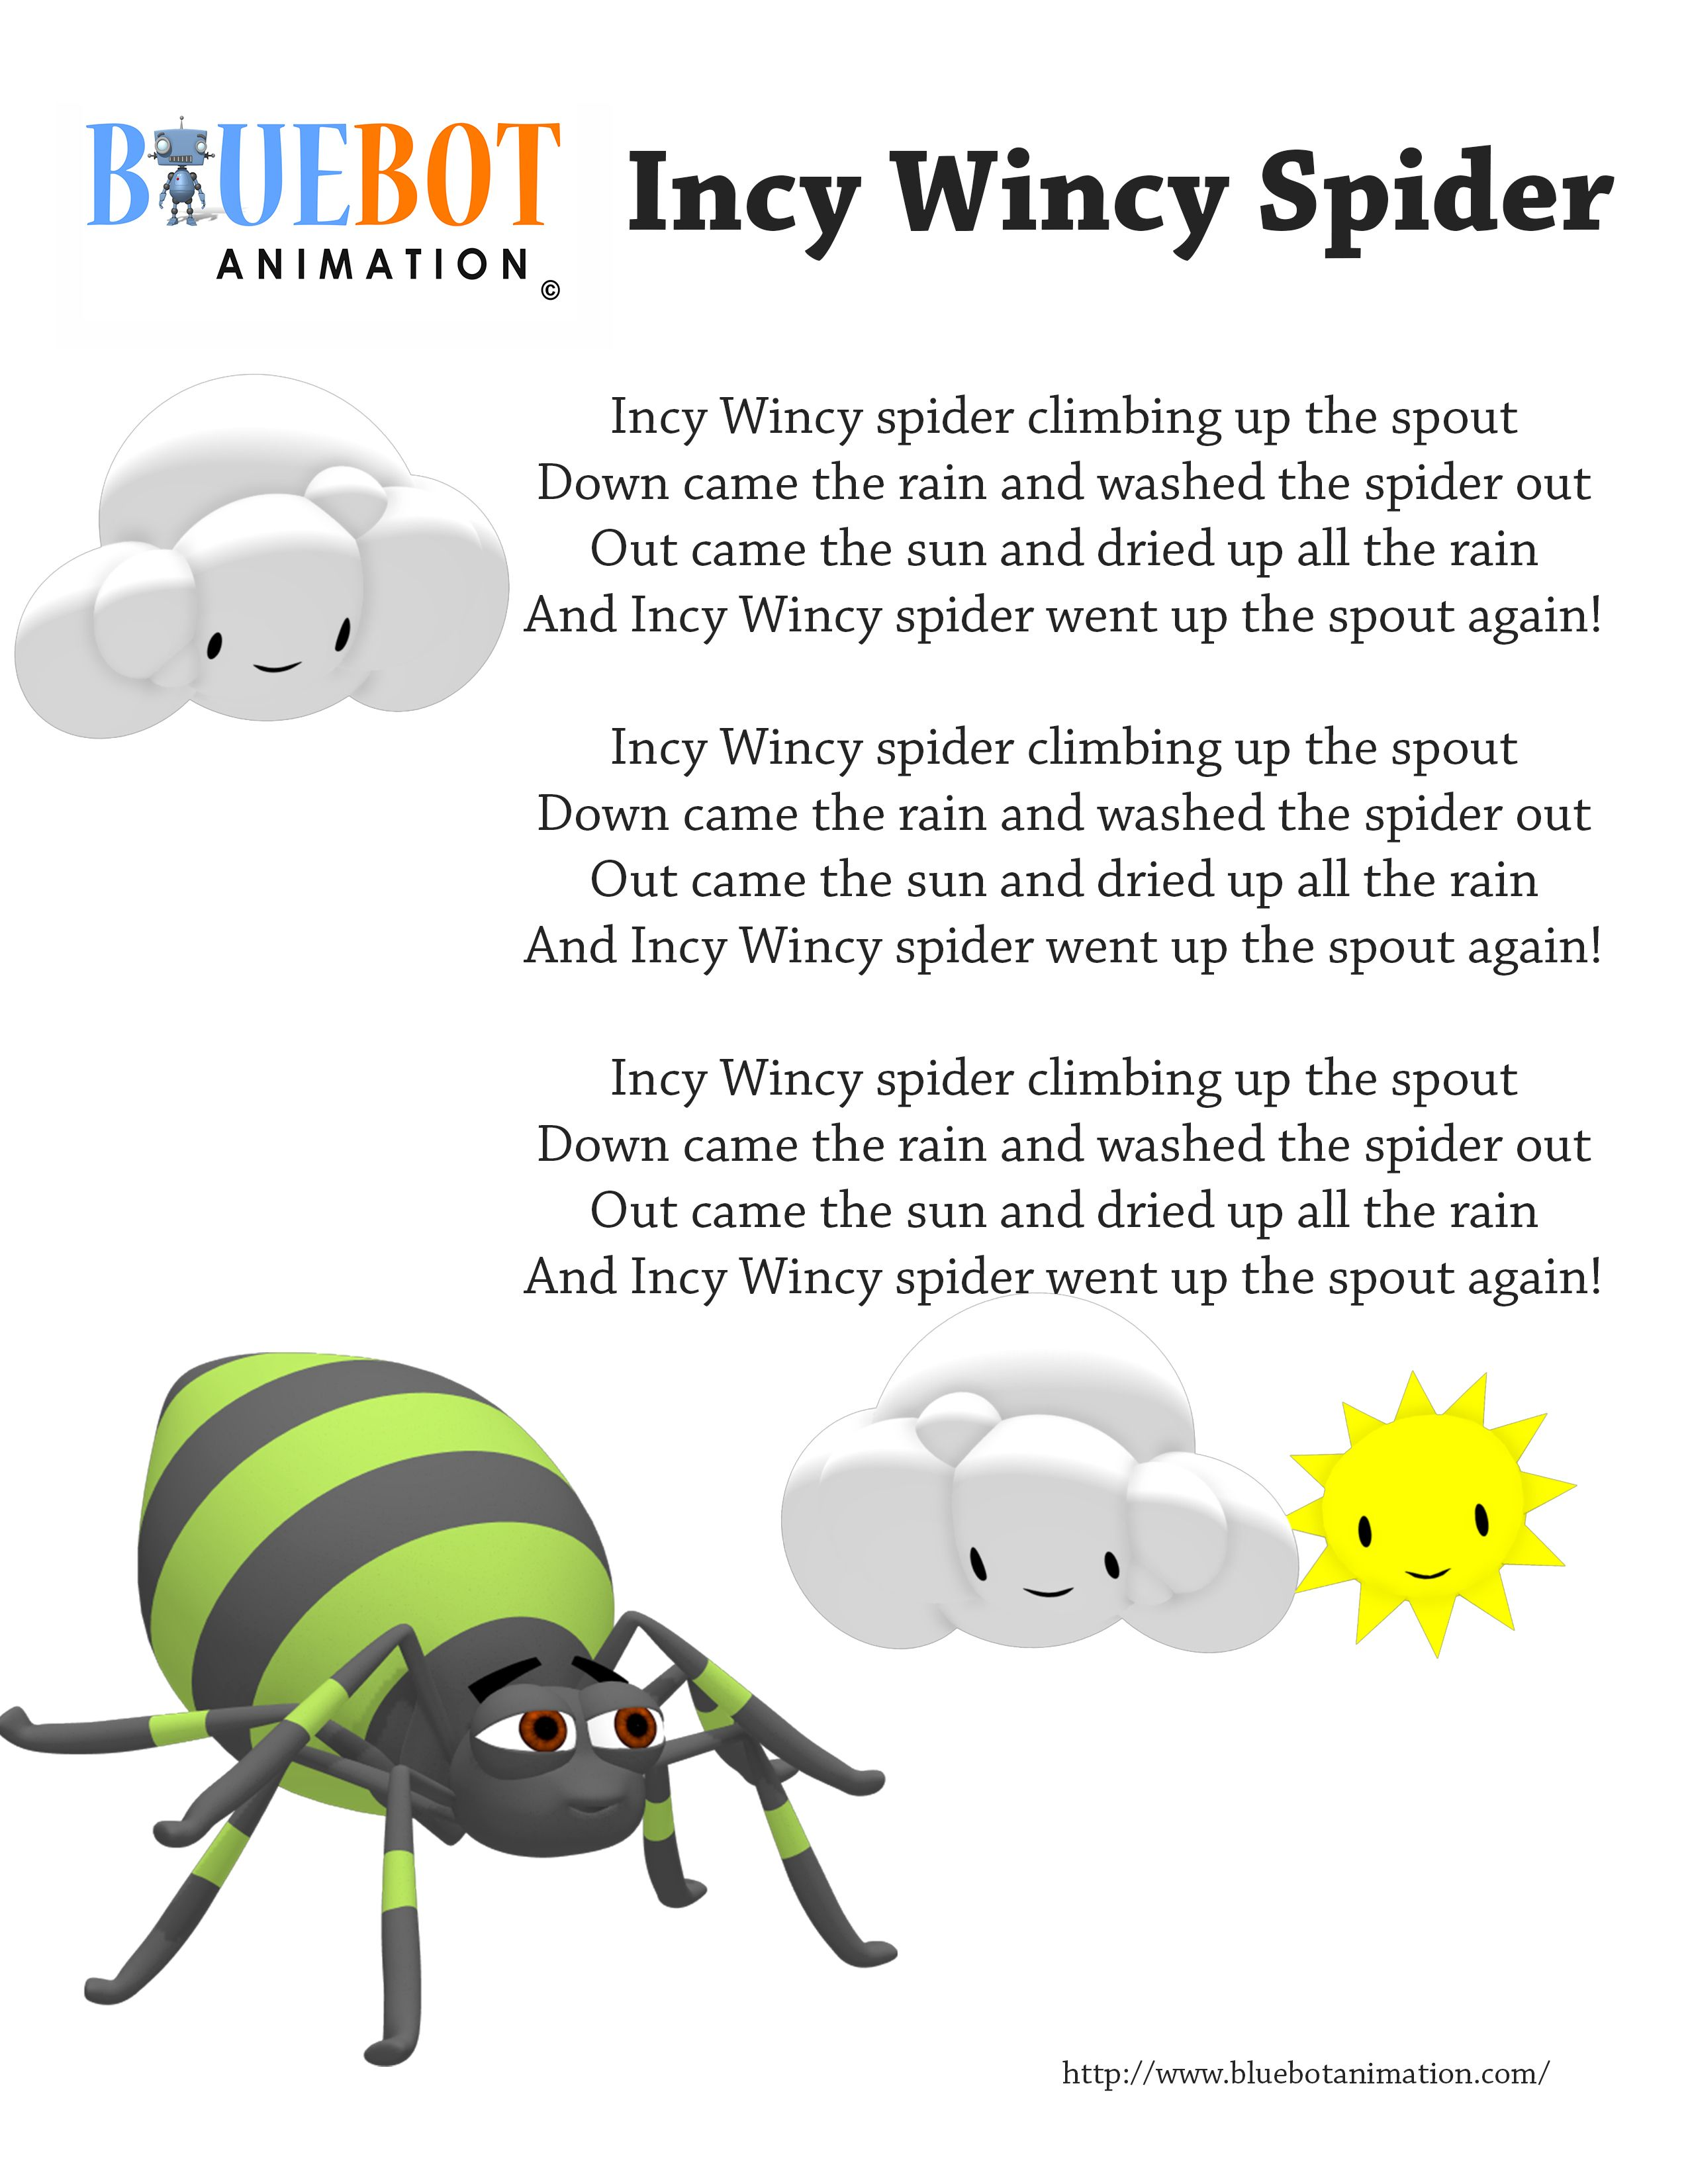 Baby Children Nursery Rhyme Song Incy Wincy Spider Itsy Bitsy Spider Nursery Rhyme Lyrics